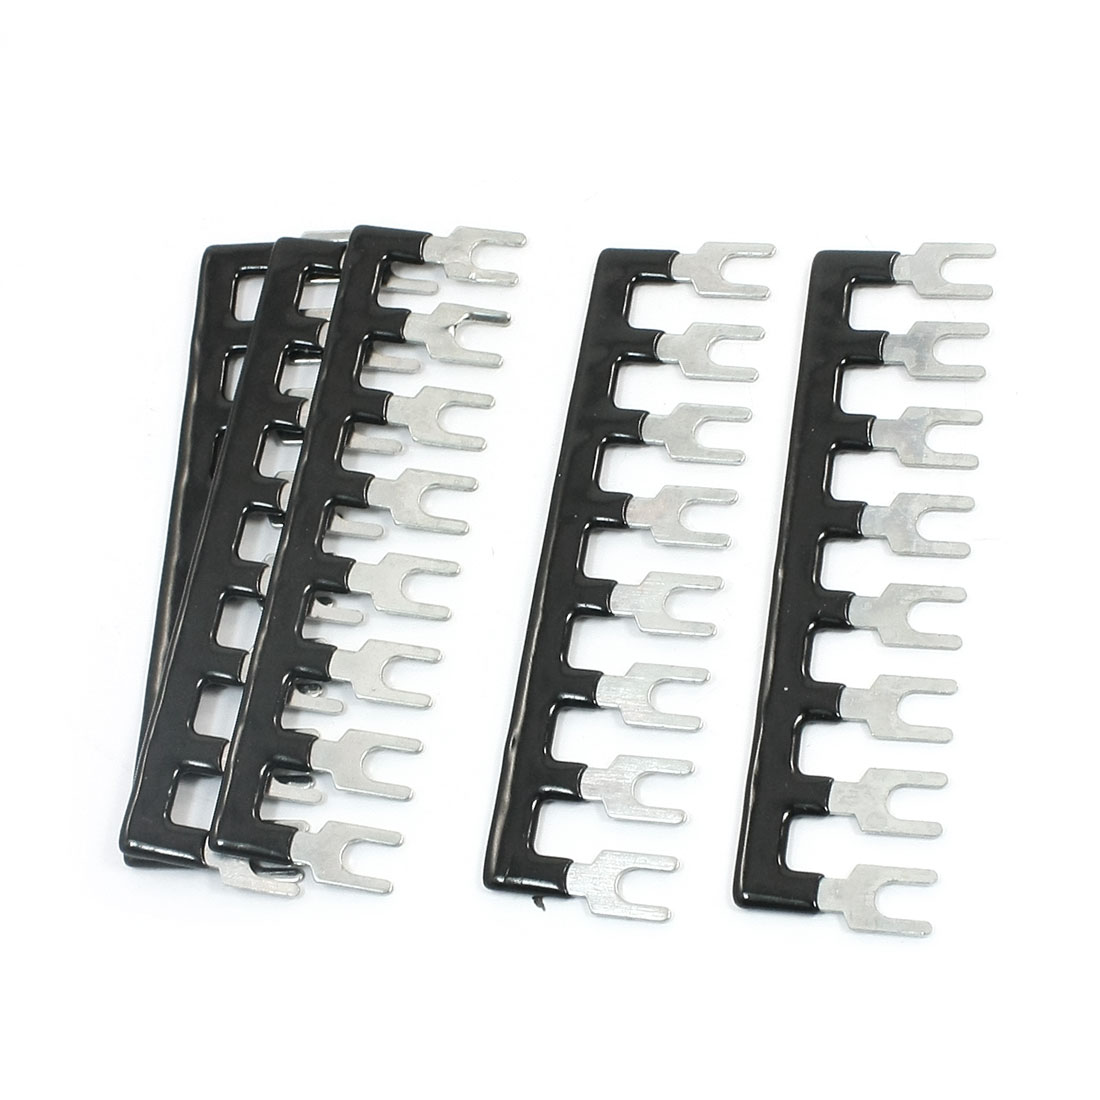 5Pcs TB2508 25A 8-Position Pre-Insulated Fork Type Furcate Barrier Terminal Connector Strip Black